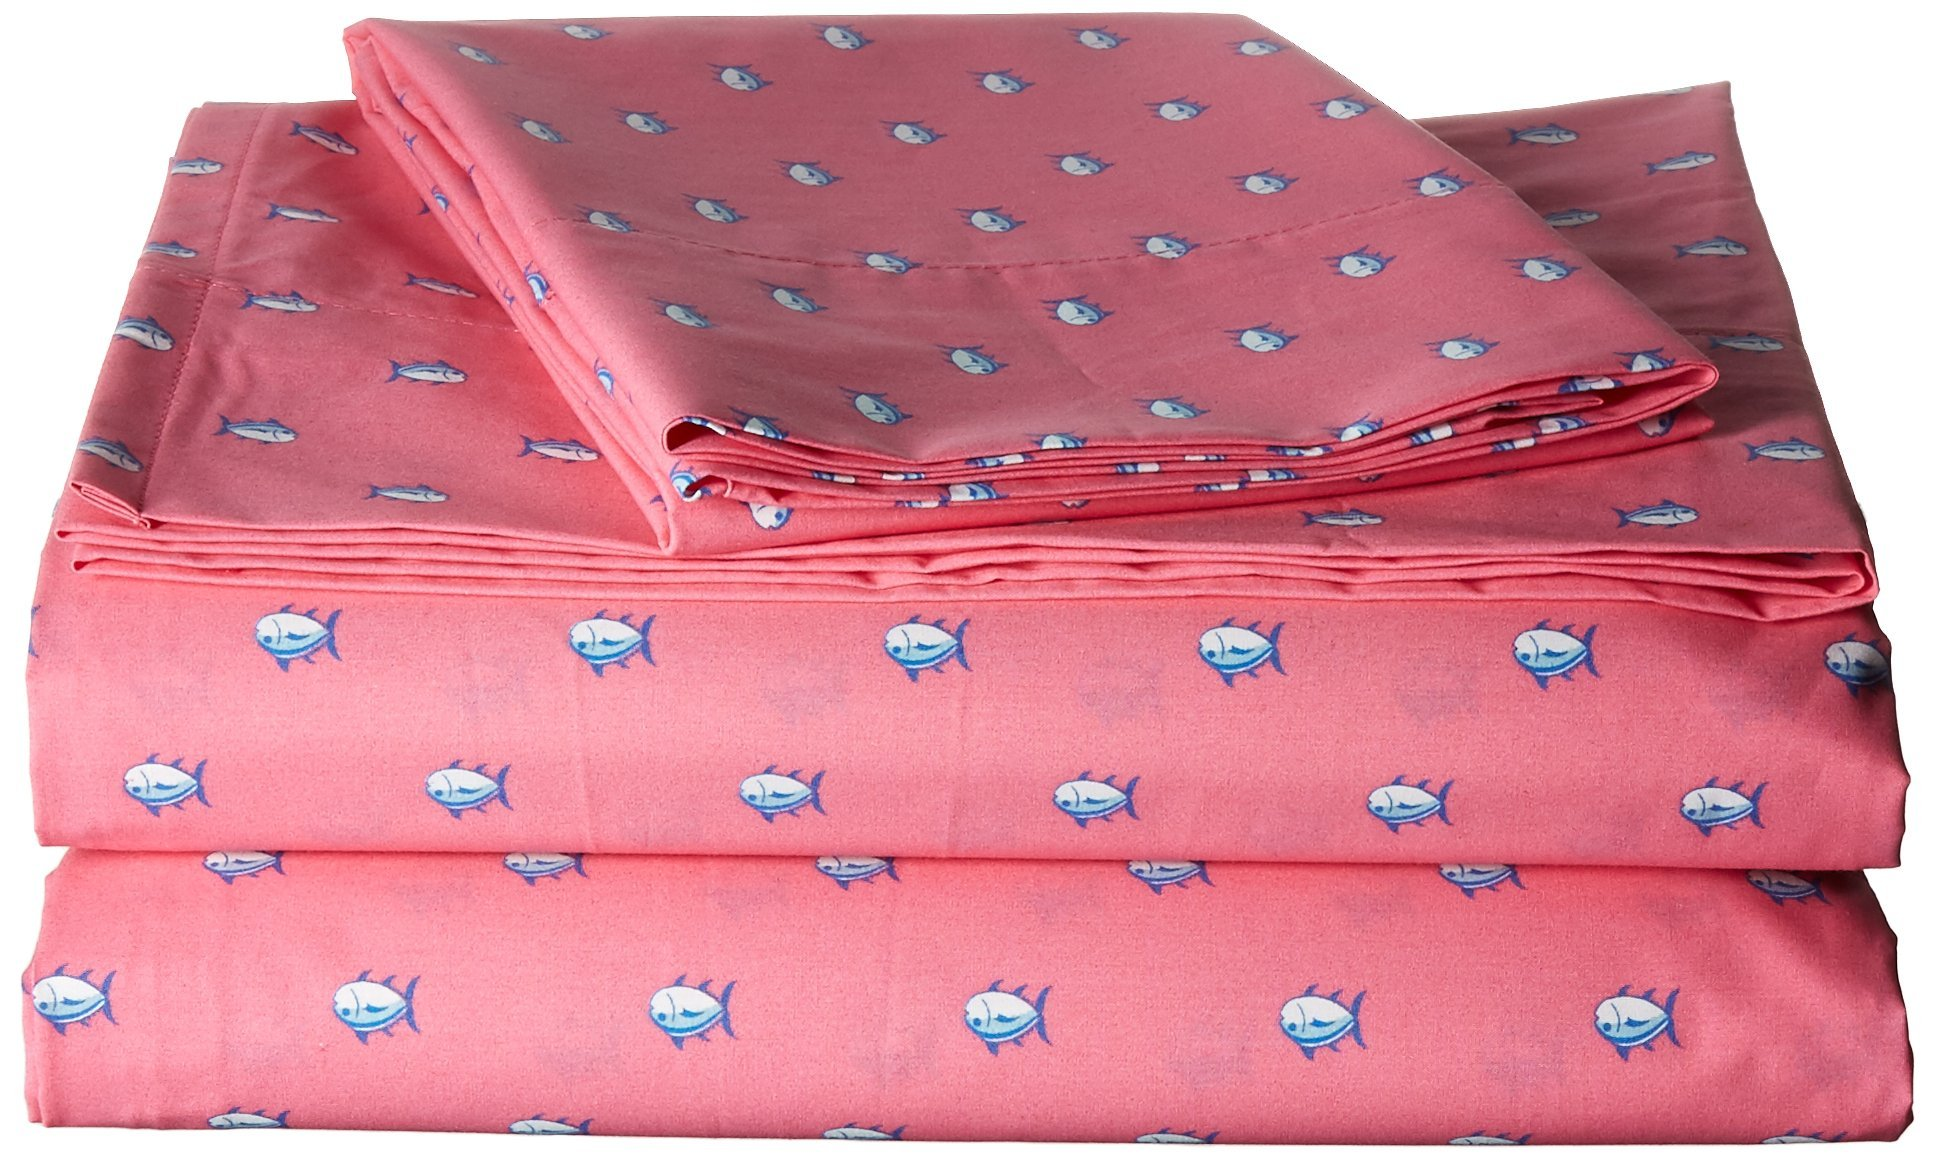 Southern Tide Printed Cotton Sheet by Southern Tide (Image #1)